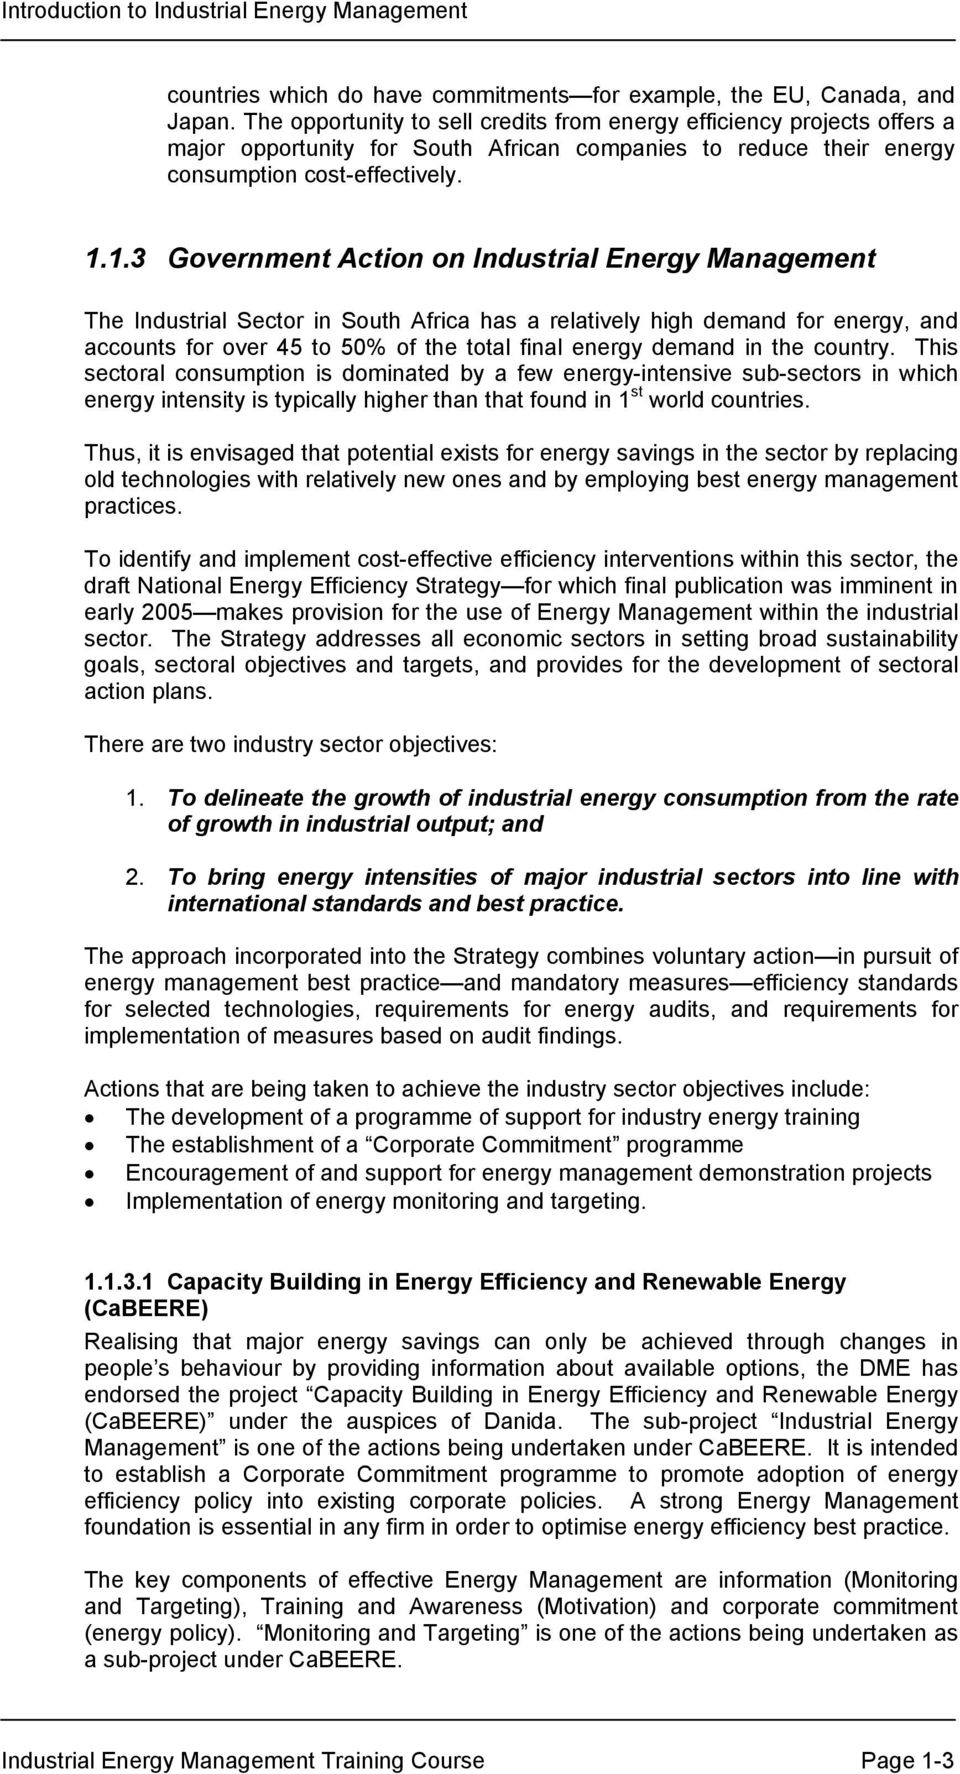 1.3 Government Action on Industrial Energy Management The Industrial Sector in South Africa has a relatively high demand for energy, and accounts for over 45 to 50% of the total final energy demand